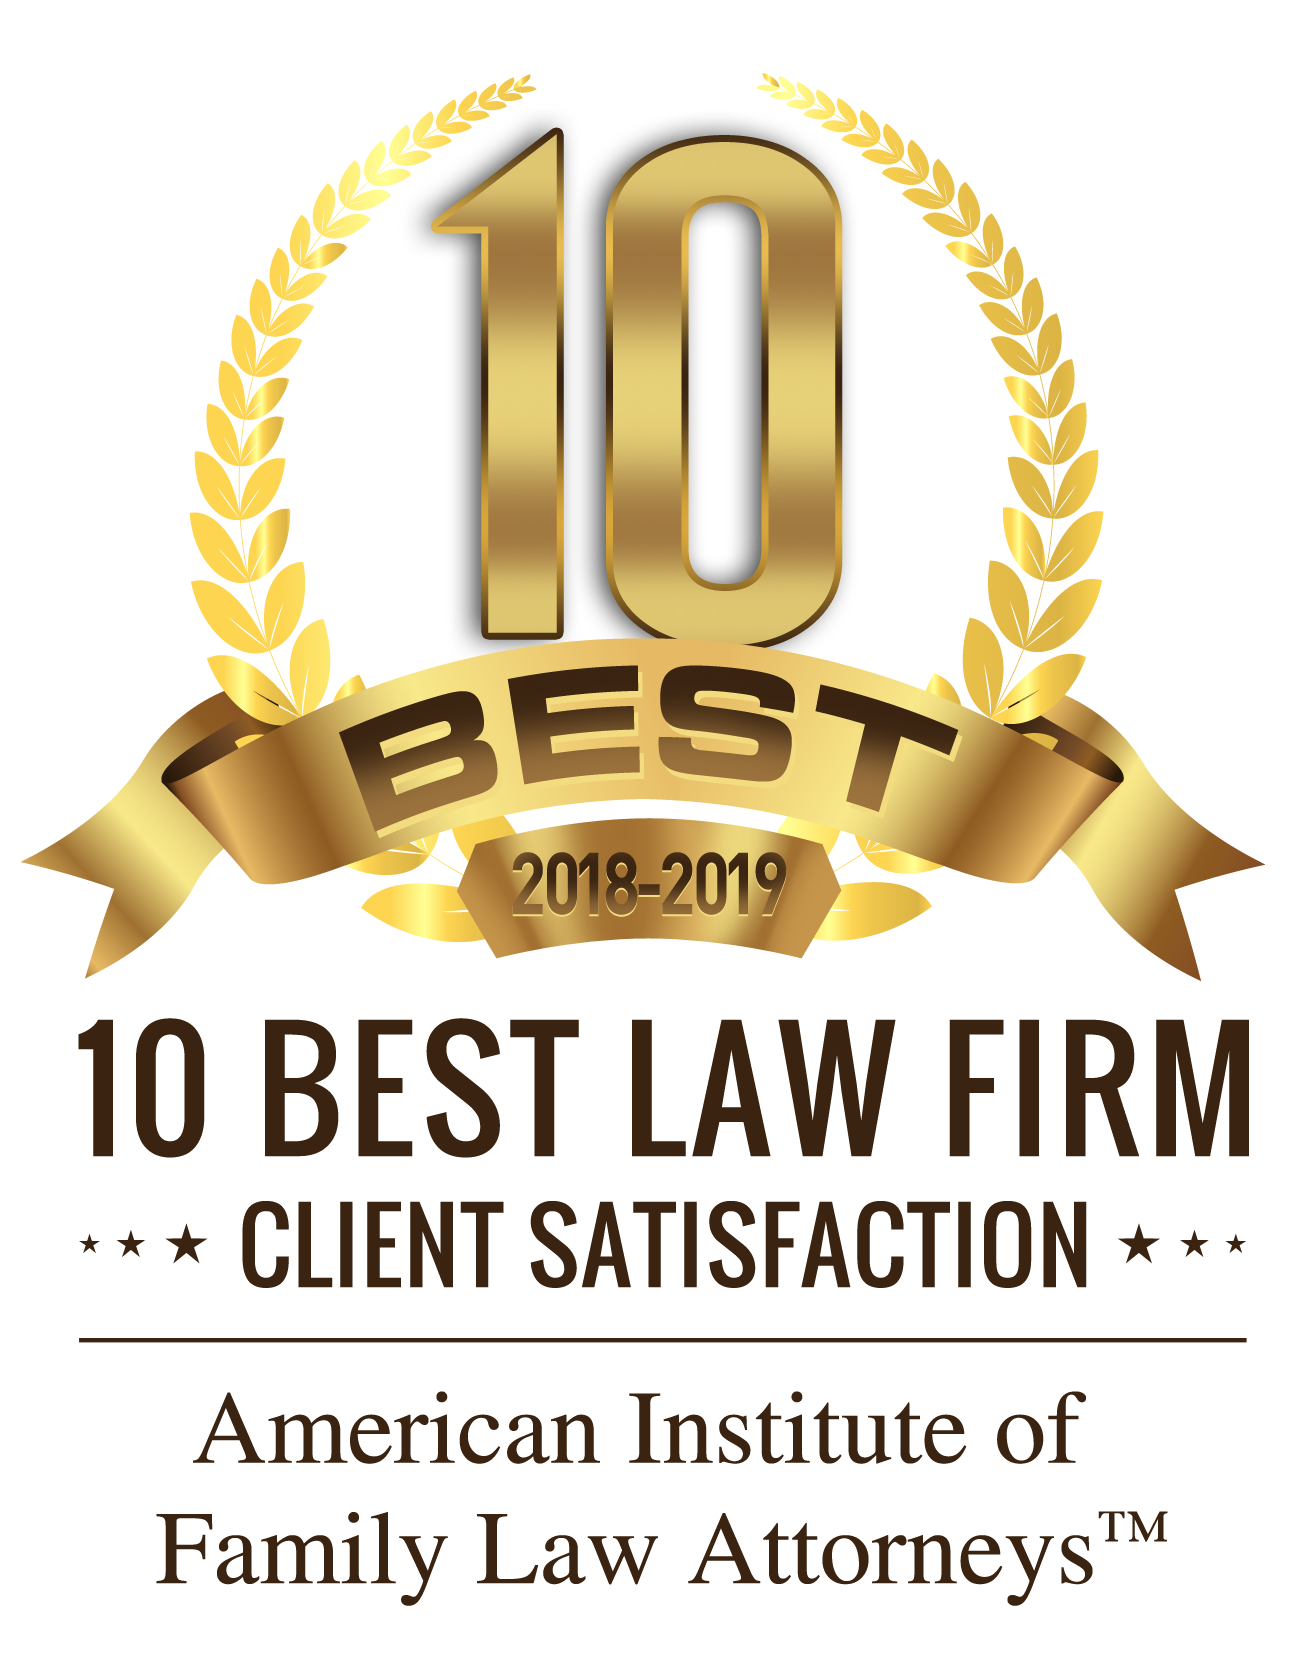 10 Best Law Firm Award for Client Satisfaction